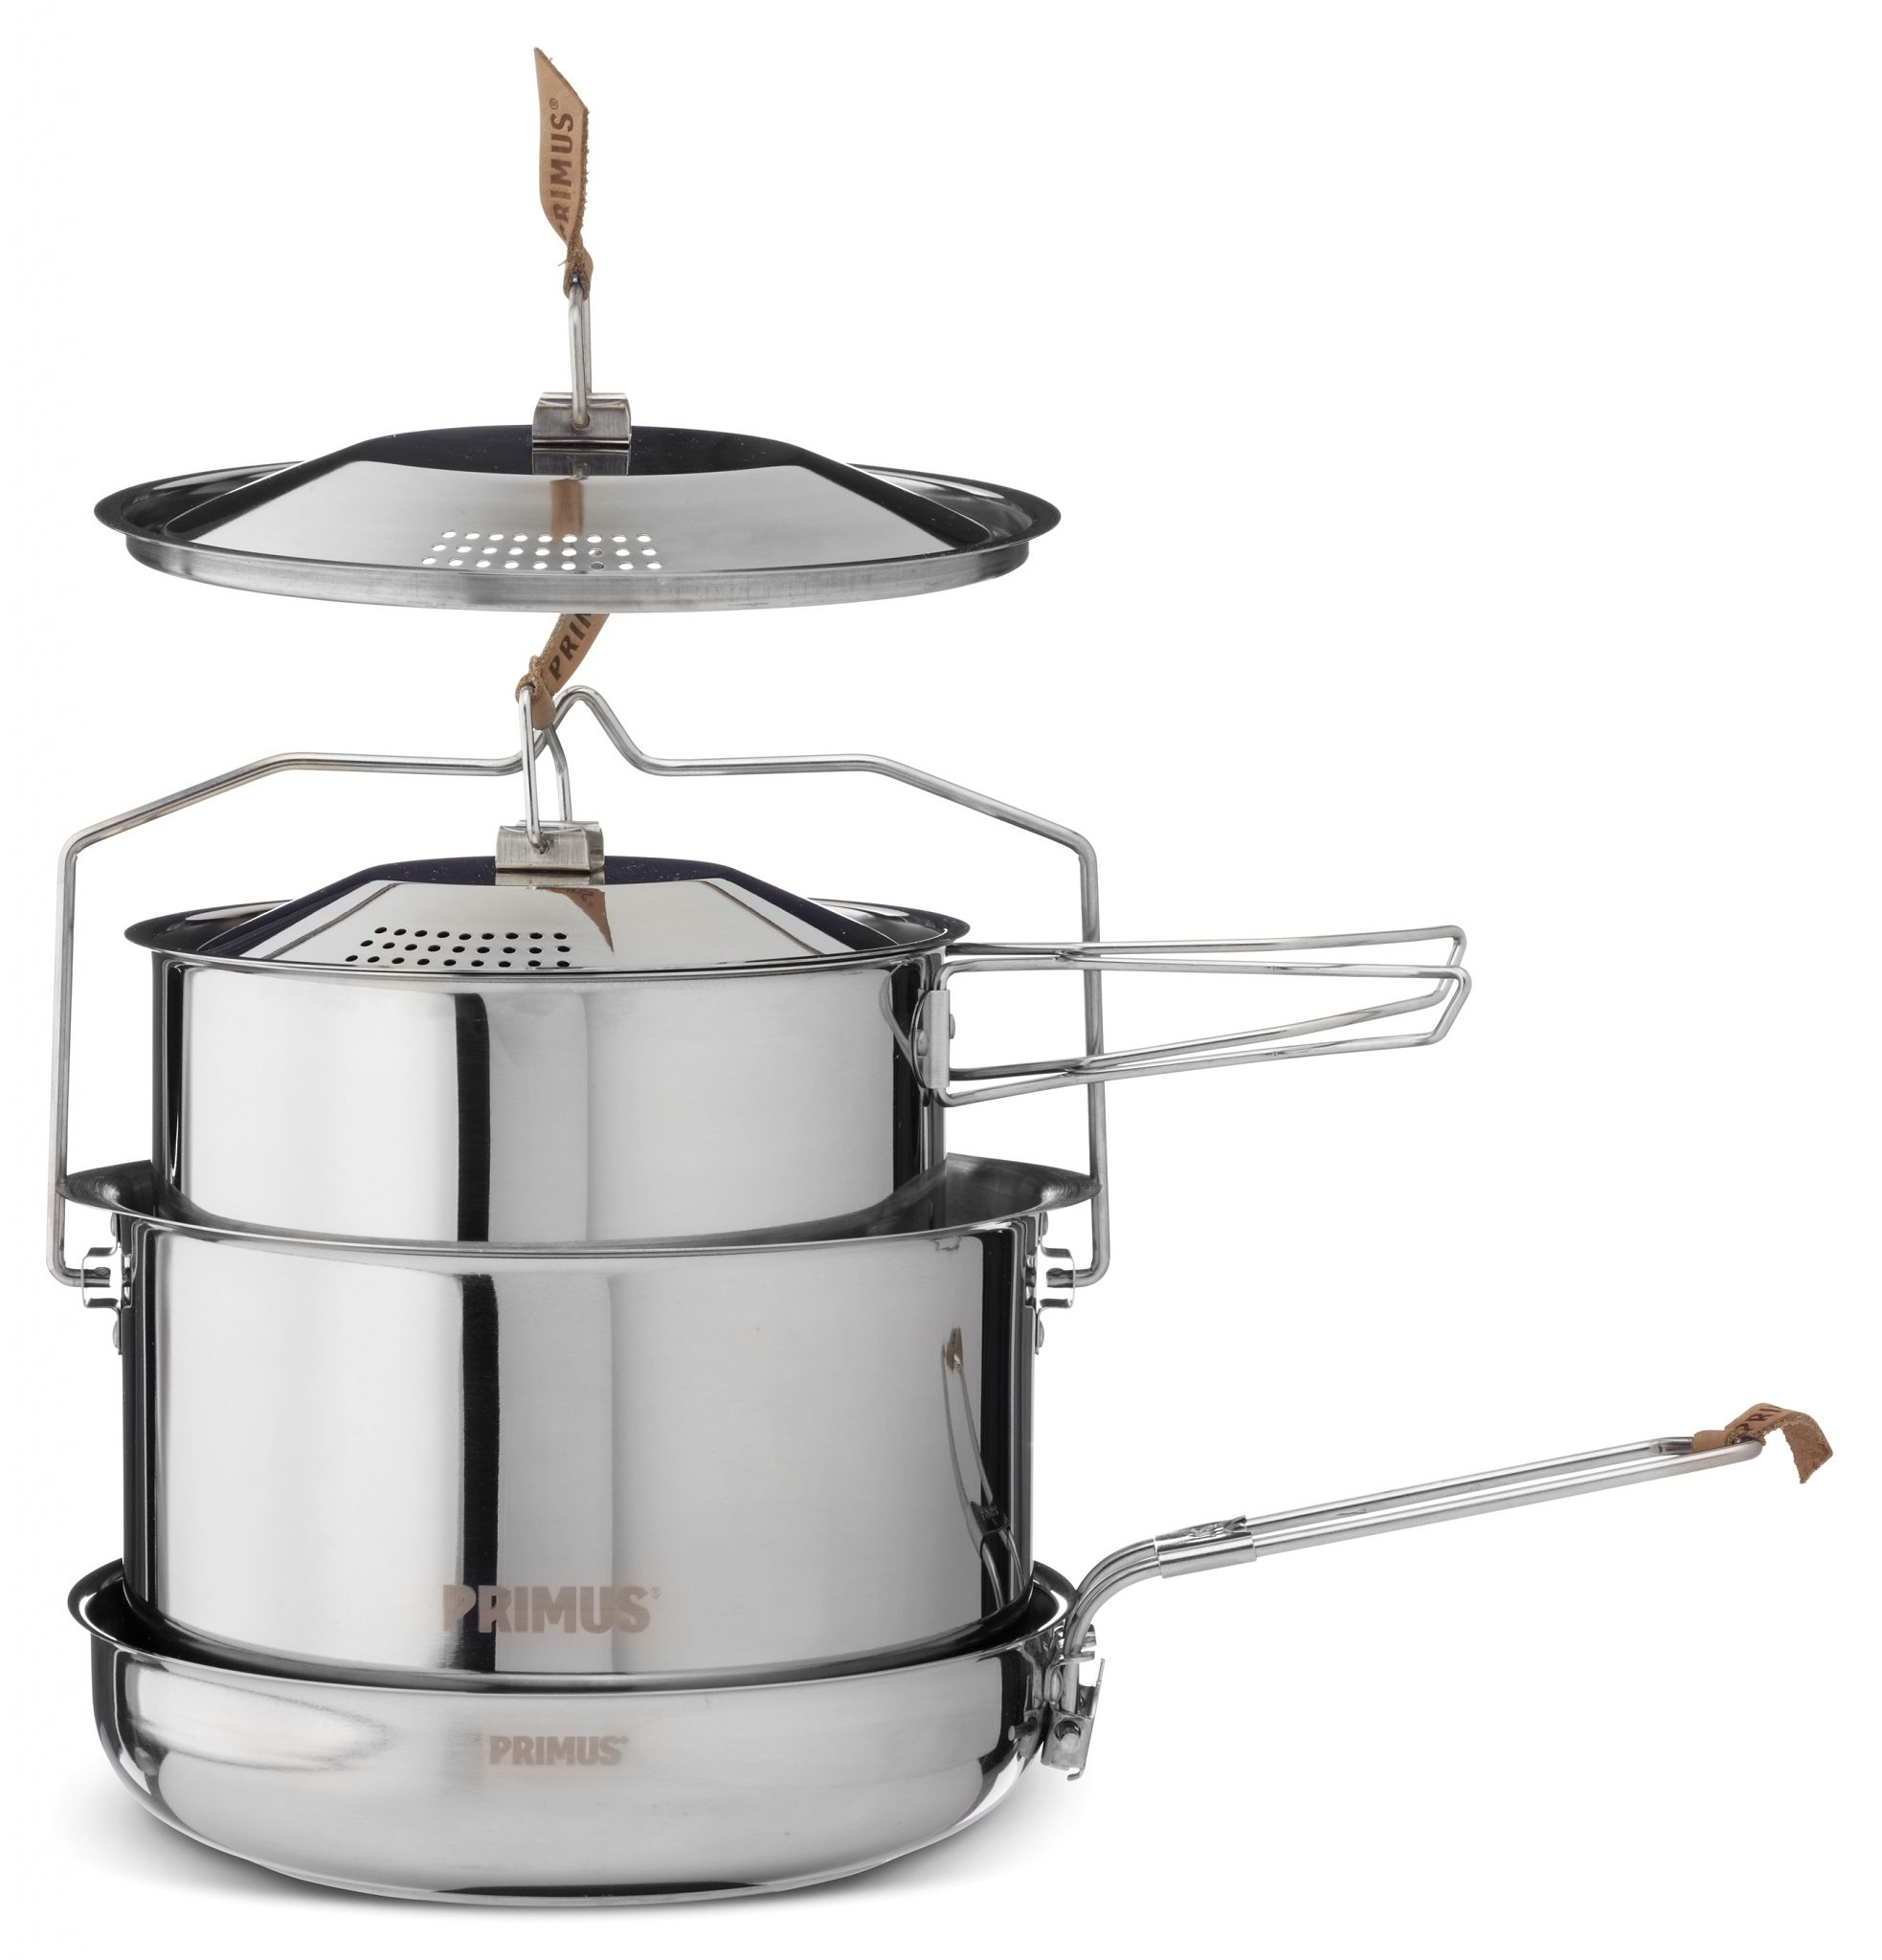 Primus Camping-Geschirr »Primus CampFire Cookset Stainless Steel Large«